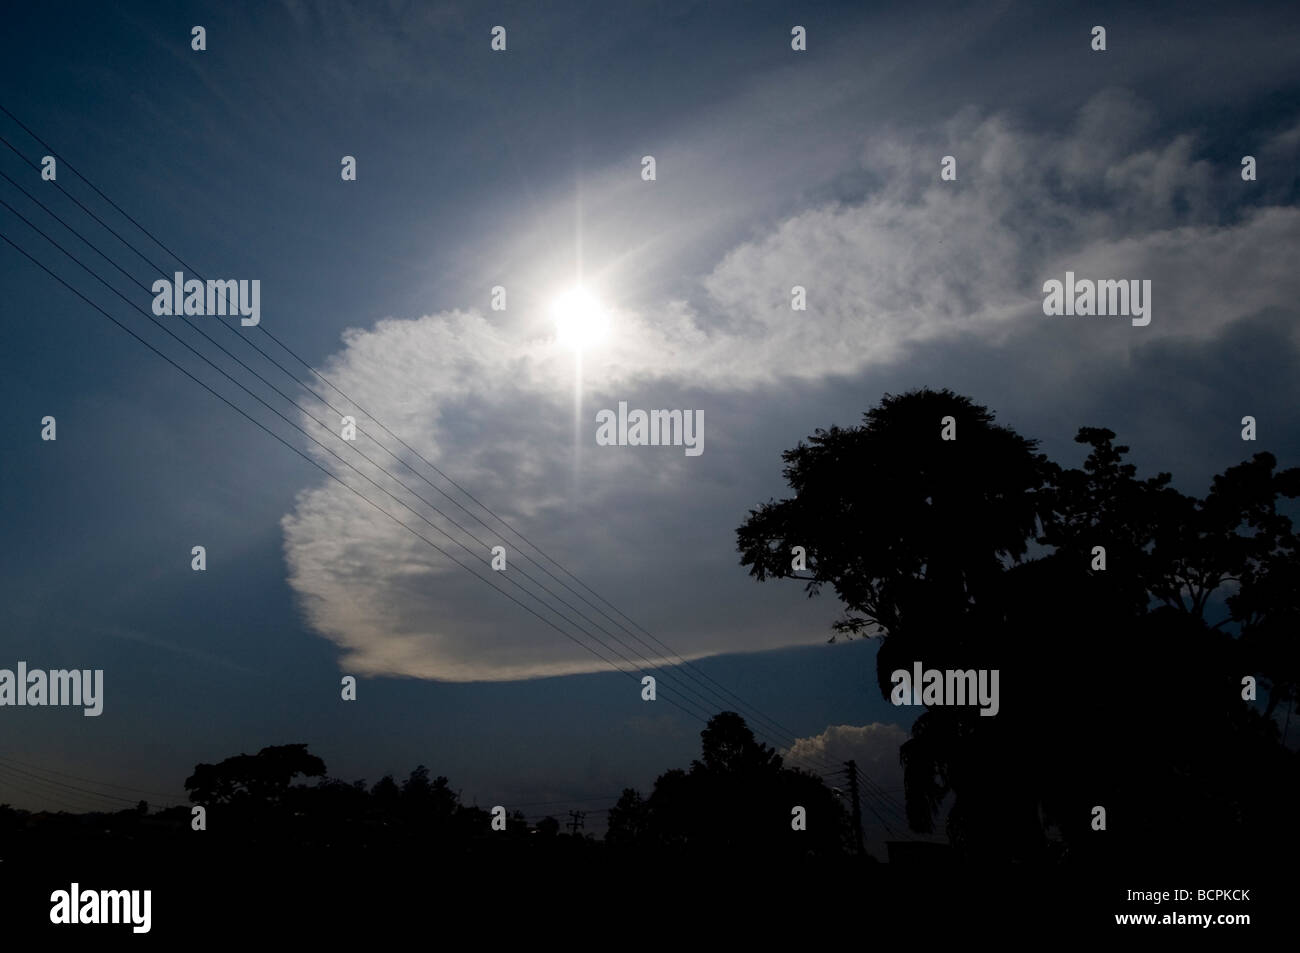 underexposed cloud and sun with tree and power cables - Stock Image